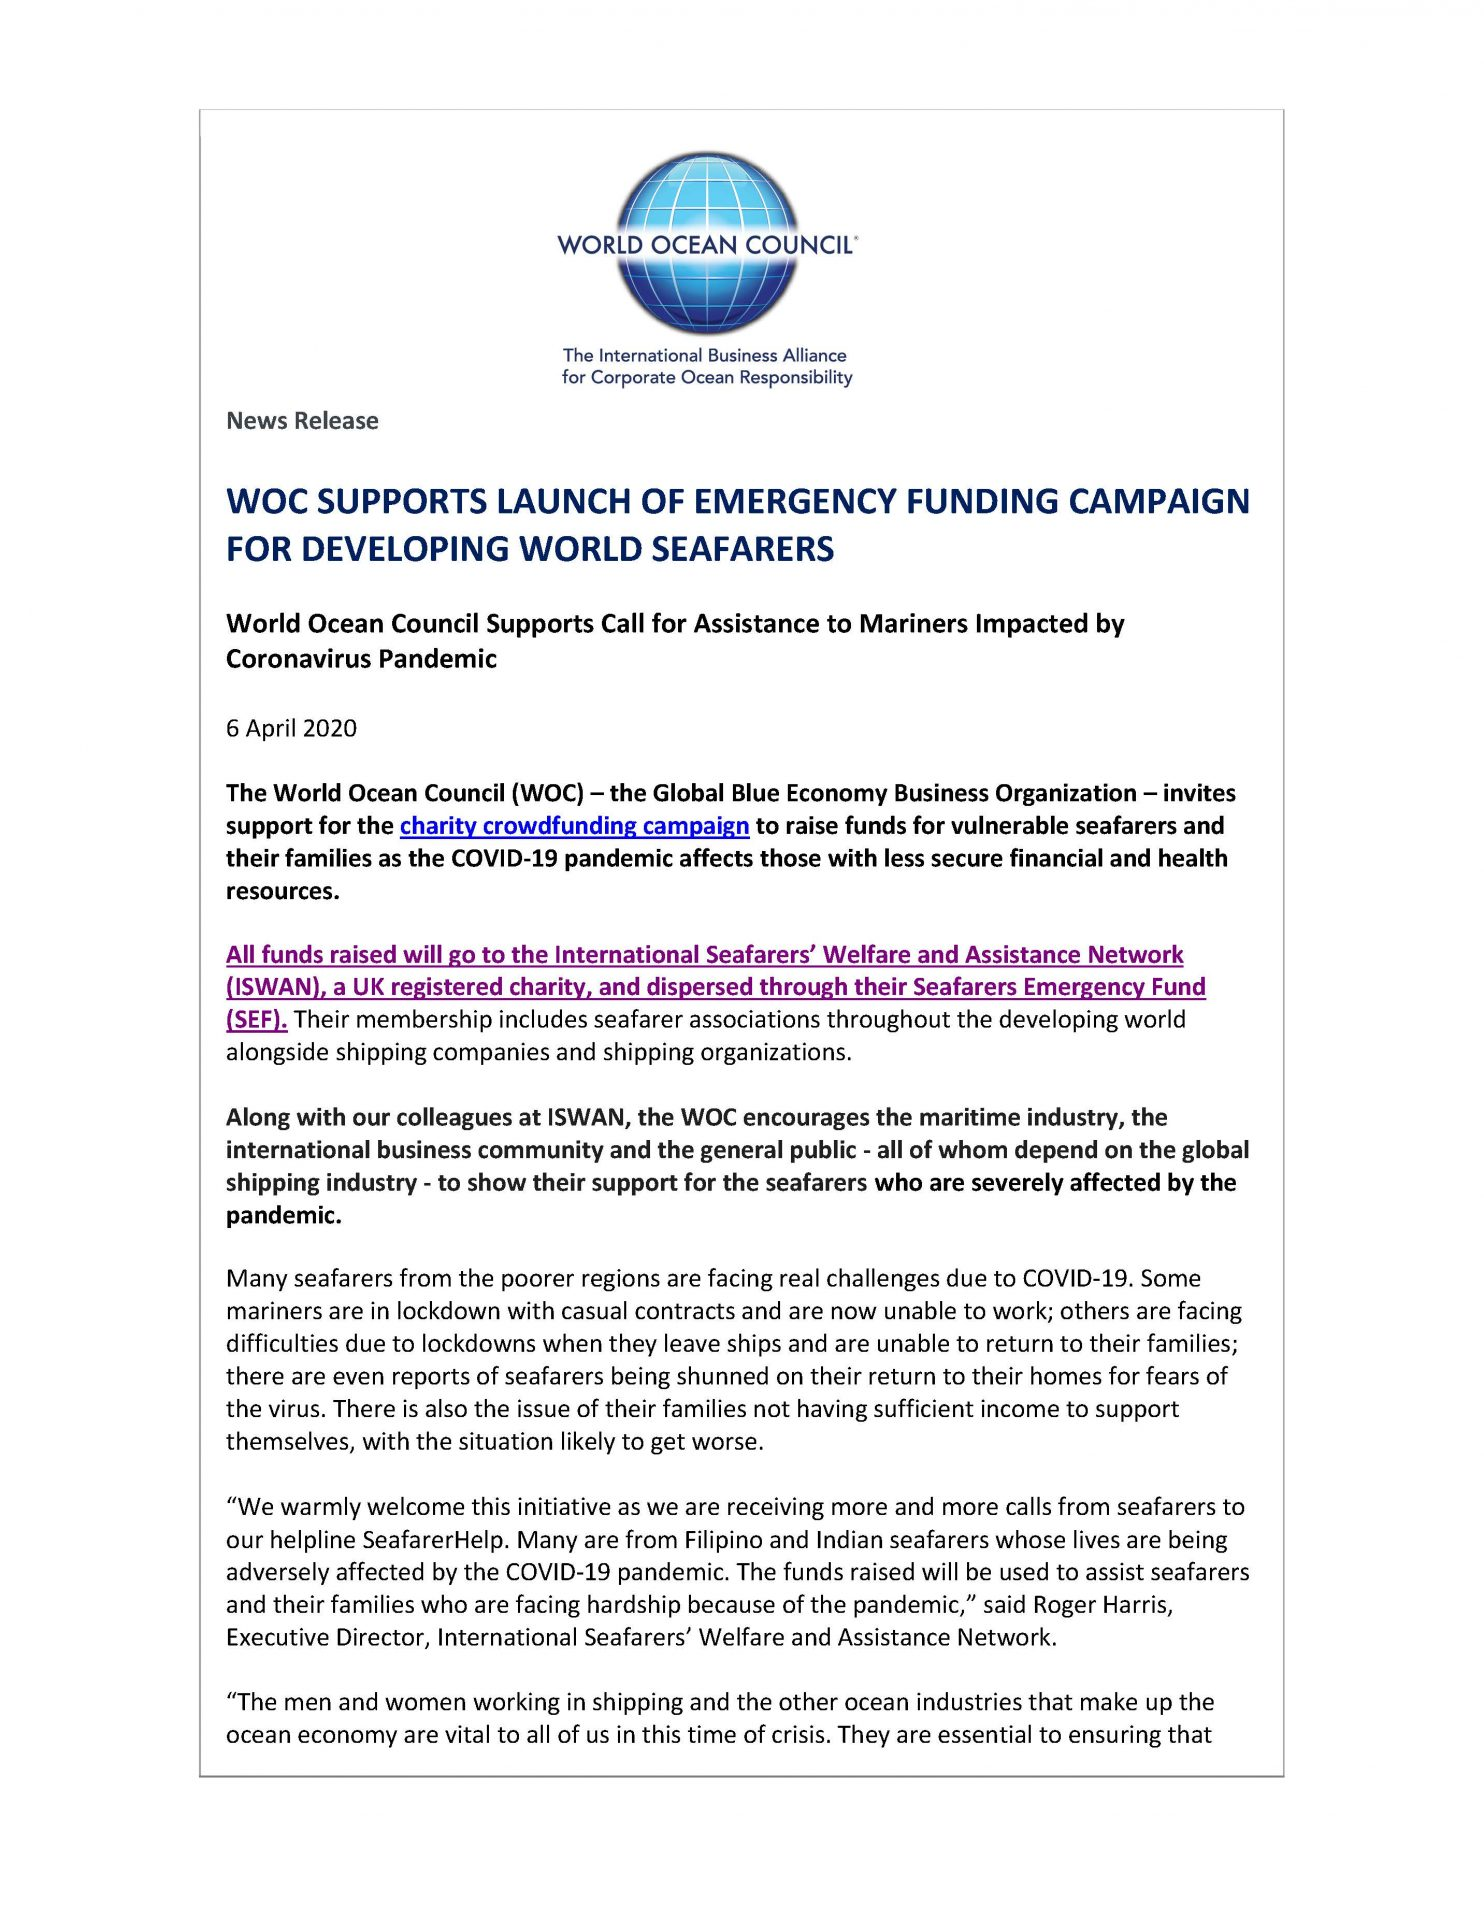 WOC Supports Launch of Emergency Funding Campaign for Developing World Seafarers - 6 April 2020